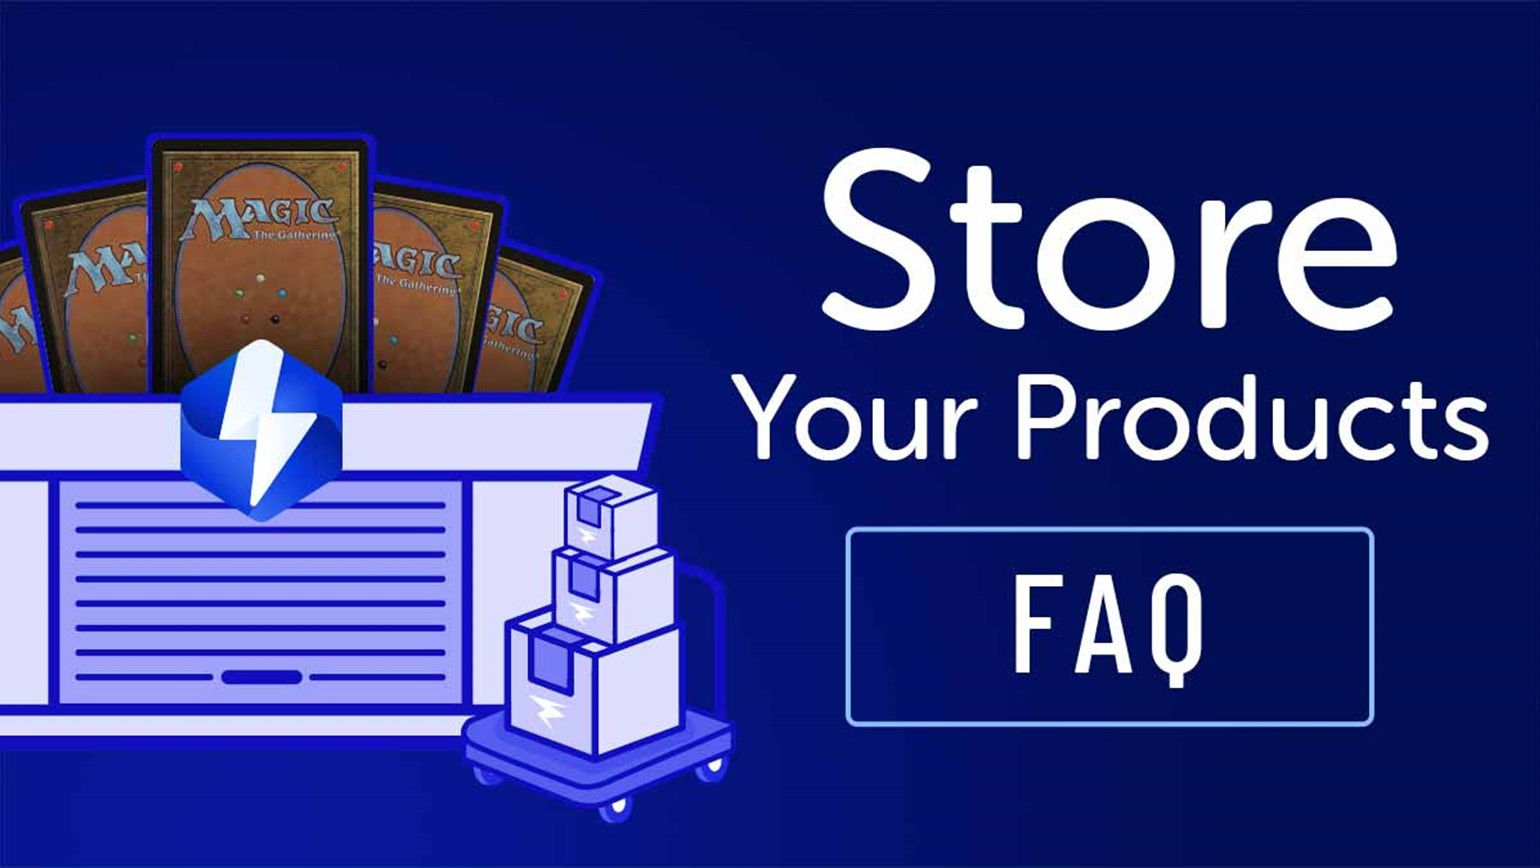 Store Your Products: FAQ